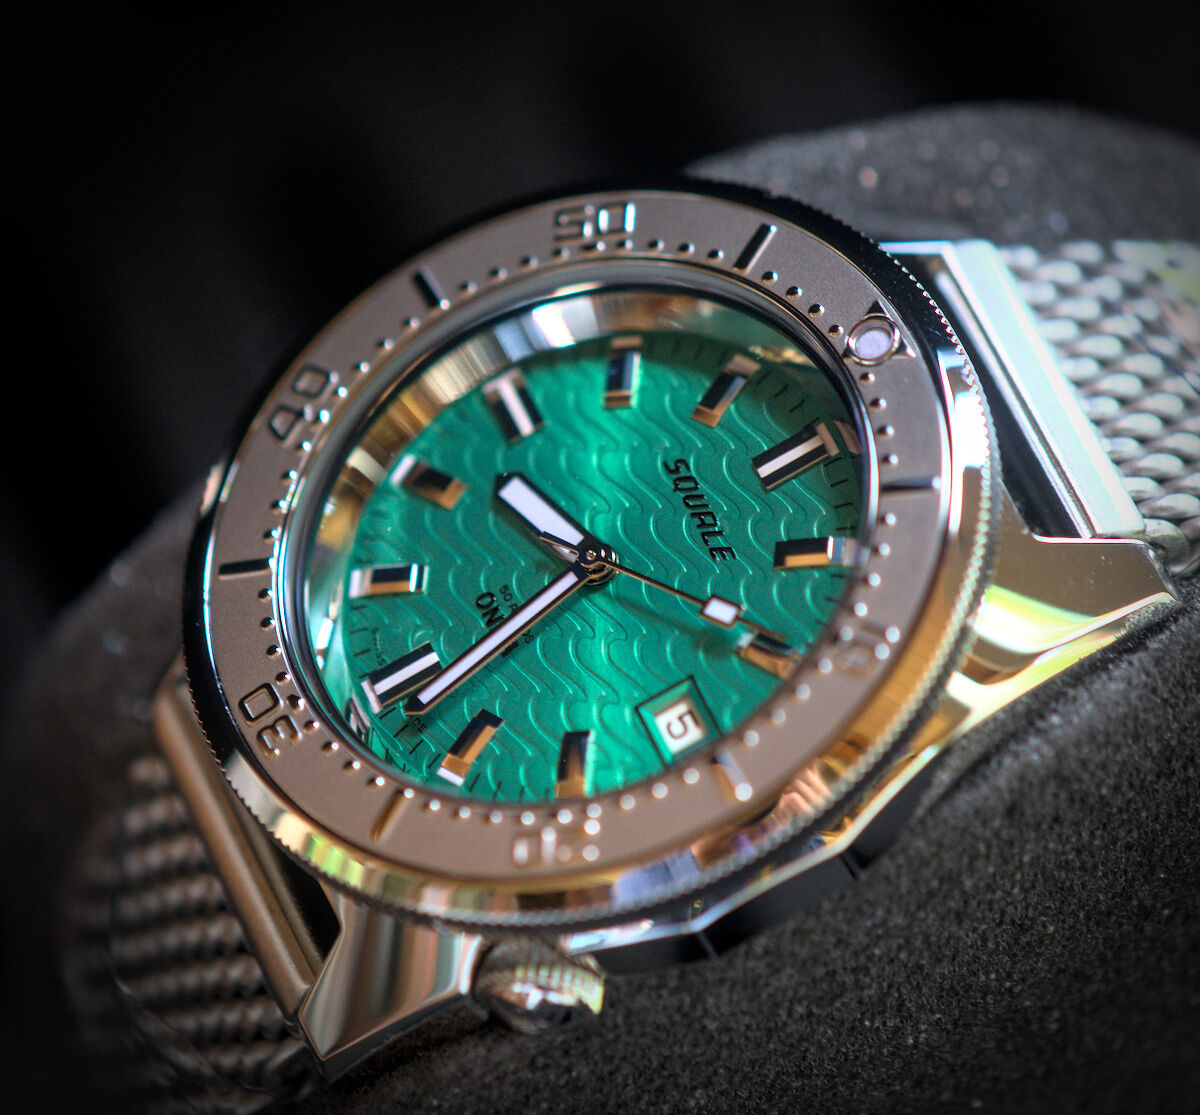 Squale 50 atmos 1521 Onda Emerald Dive Watch